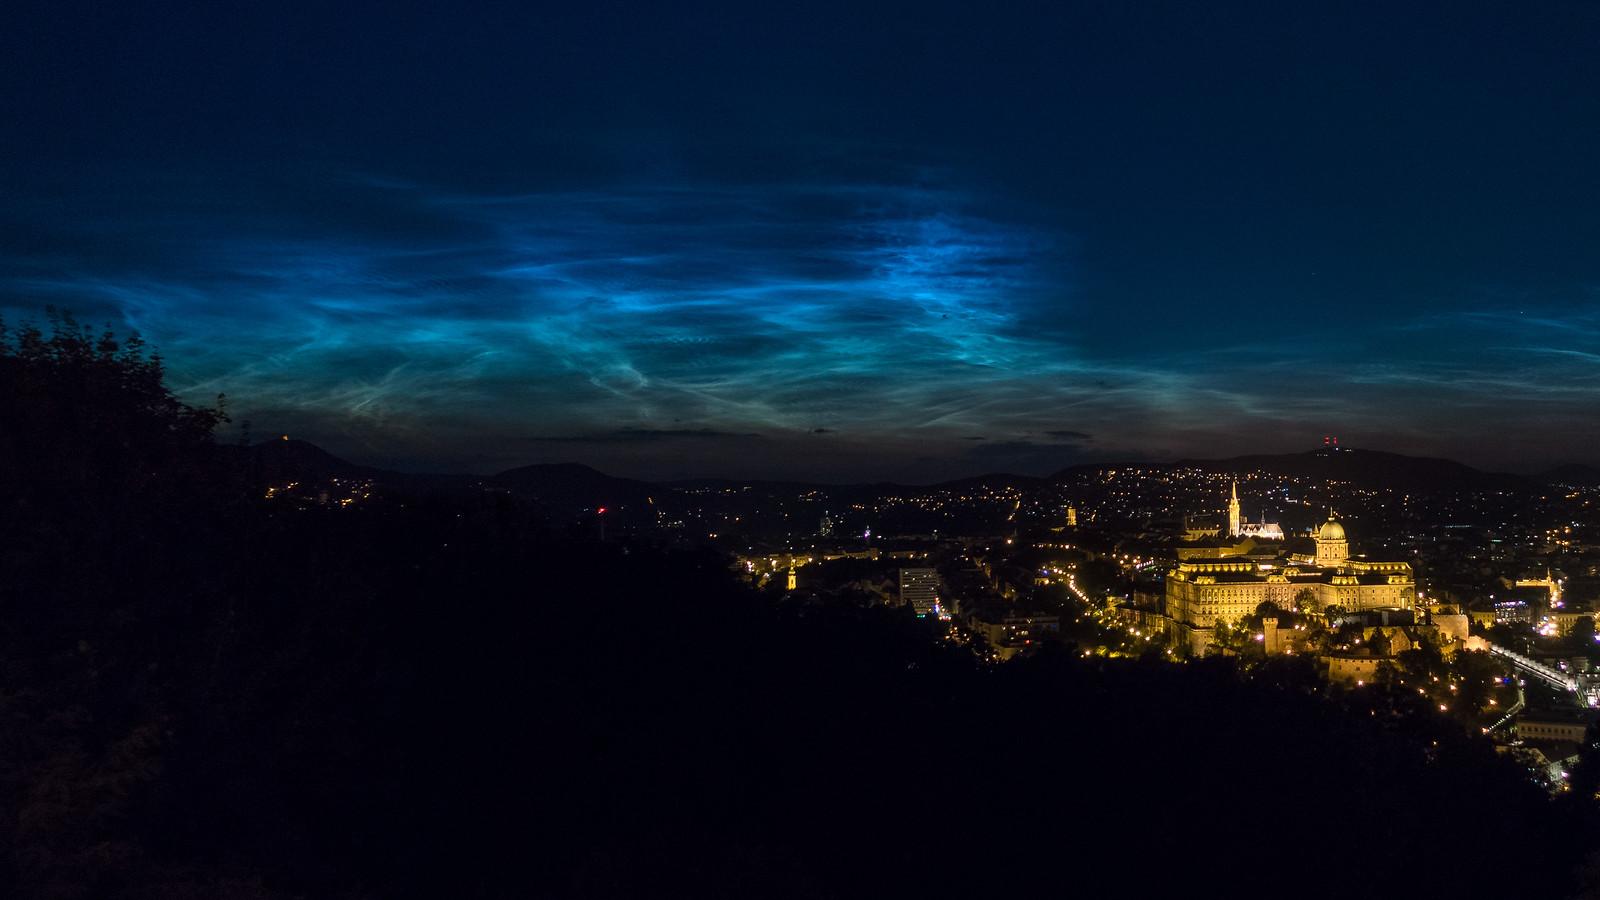 noctilucent clouds from Citadel above Buda Castle